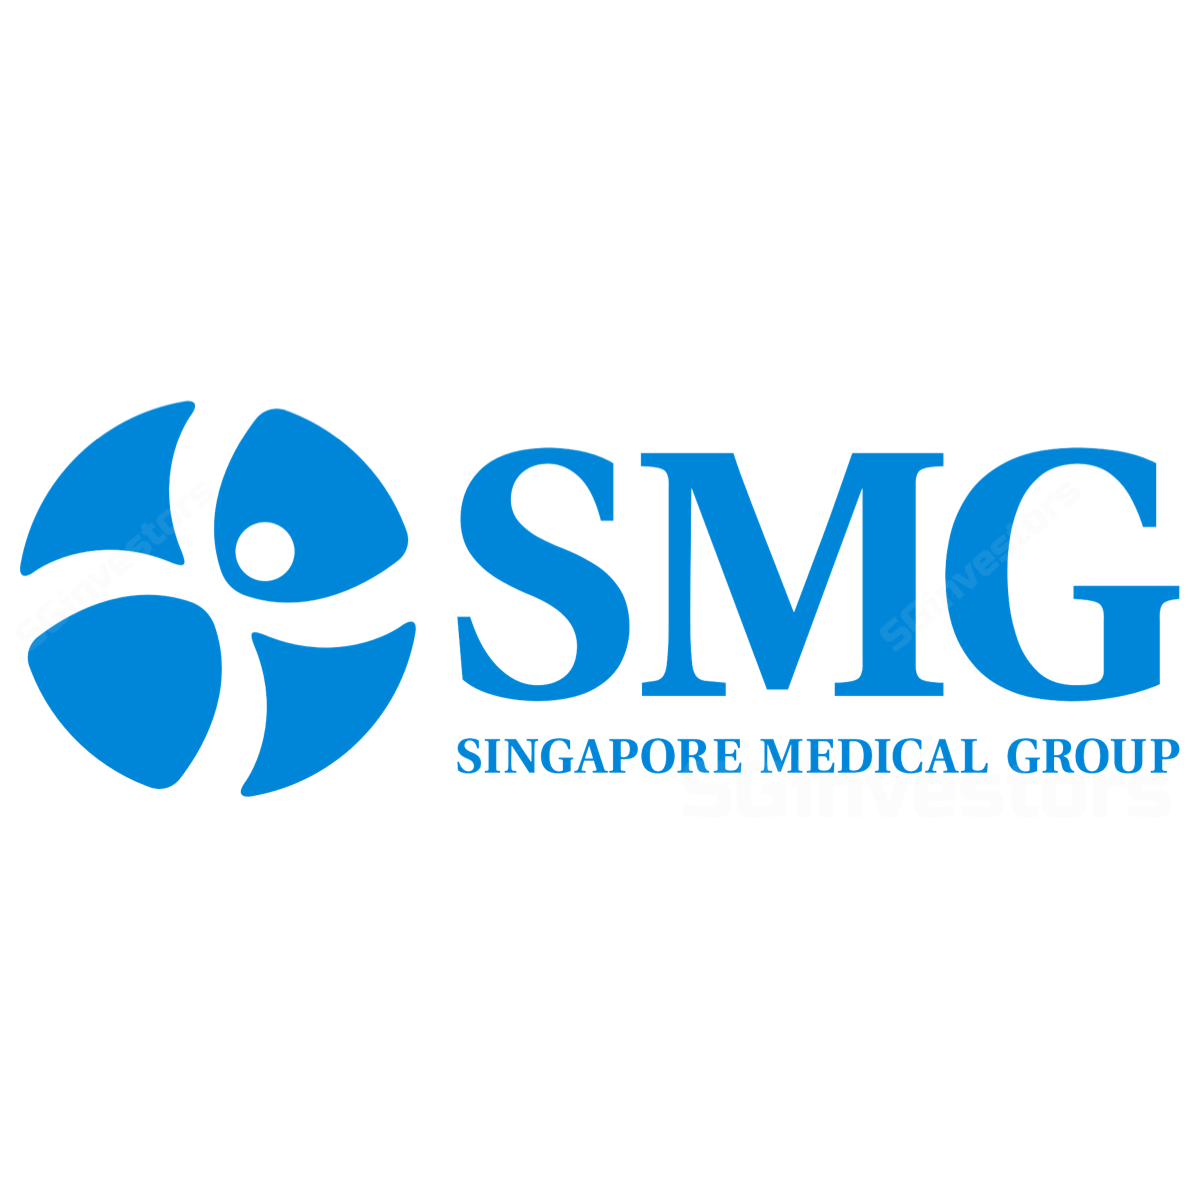 Singapore Medical Group (SMG SP) - RHB Invest 2017-01-23: Asset-light contender